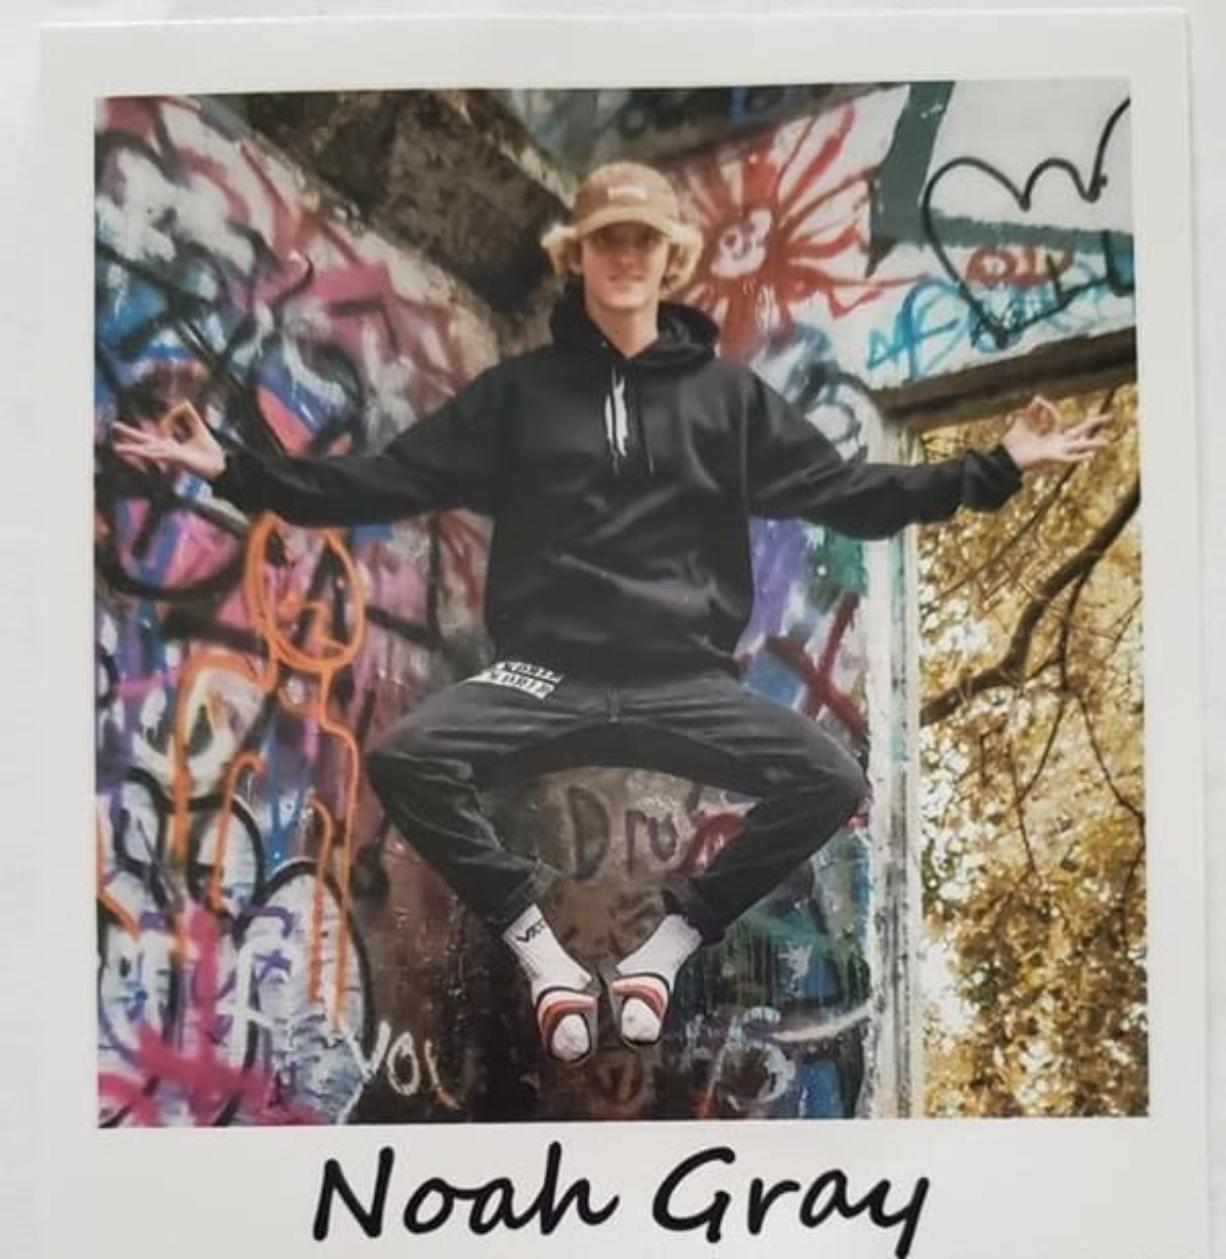 Noah Gray, 18, of Woodland, died of injuries suffered in a Feb. 2, 2020, vehicle vs. pedestrian crash near Horseshoe Lake.